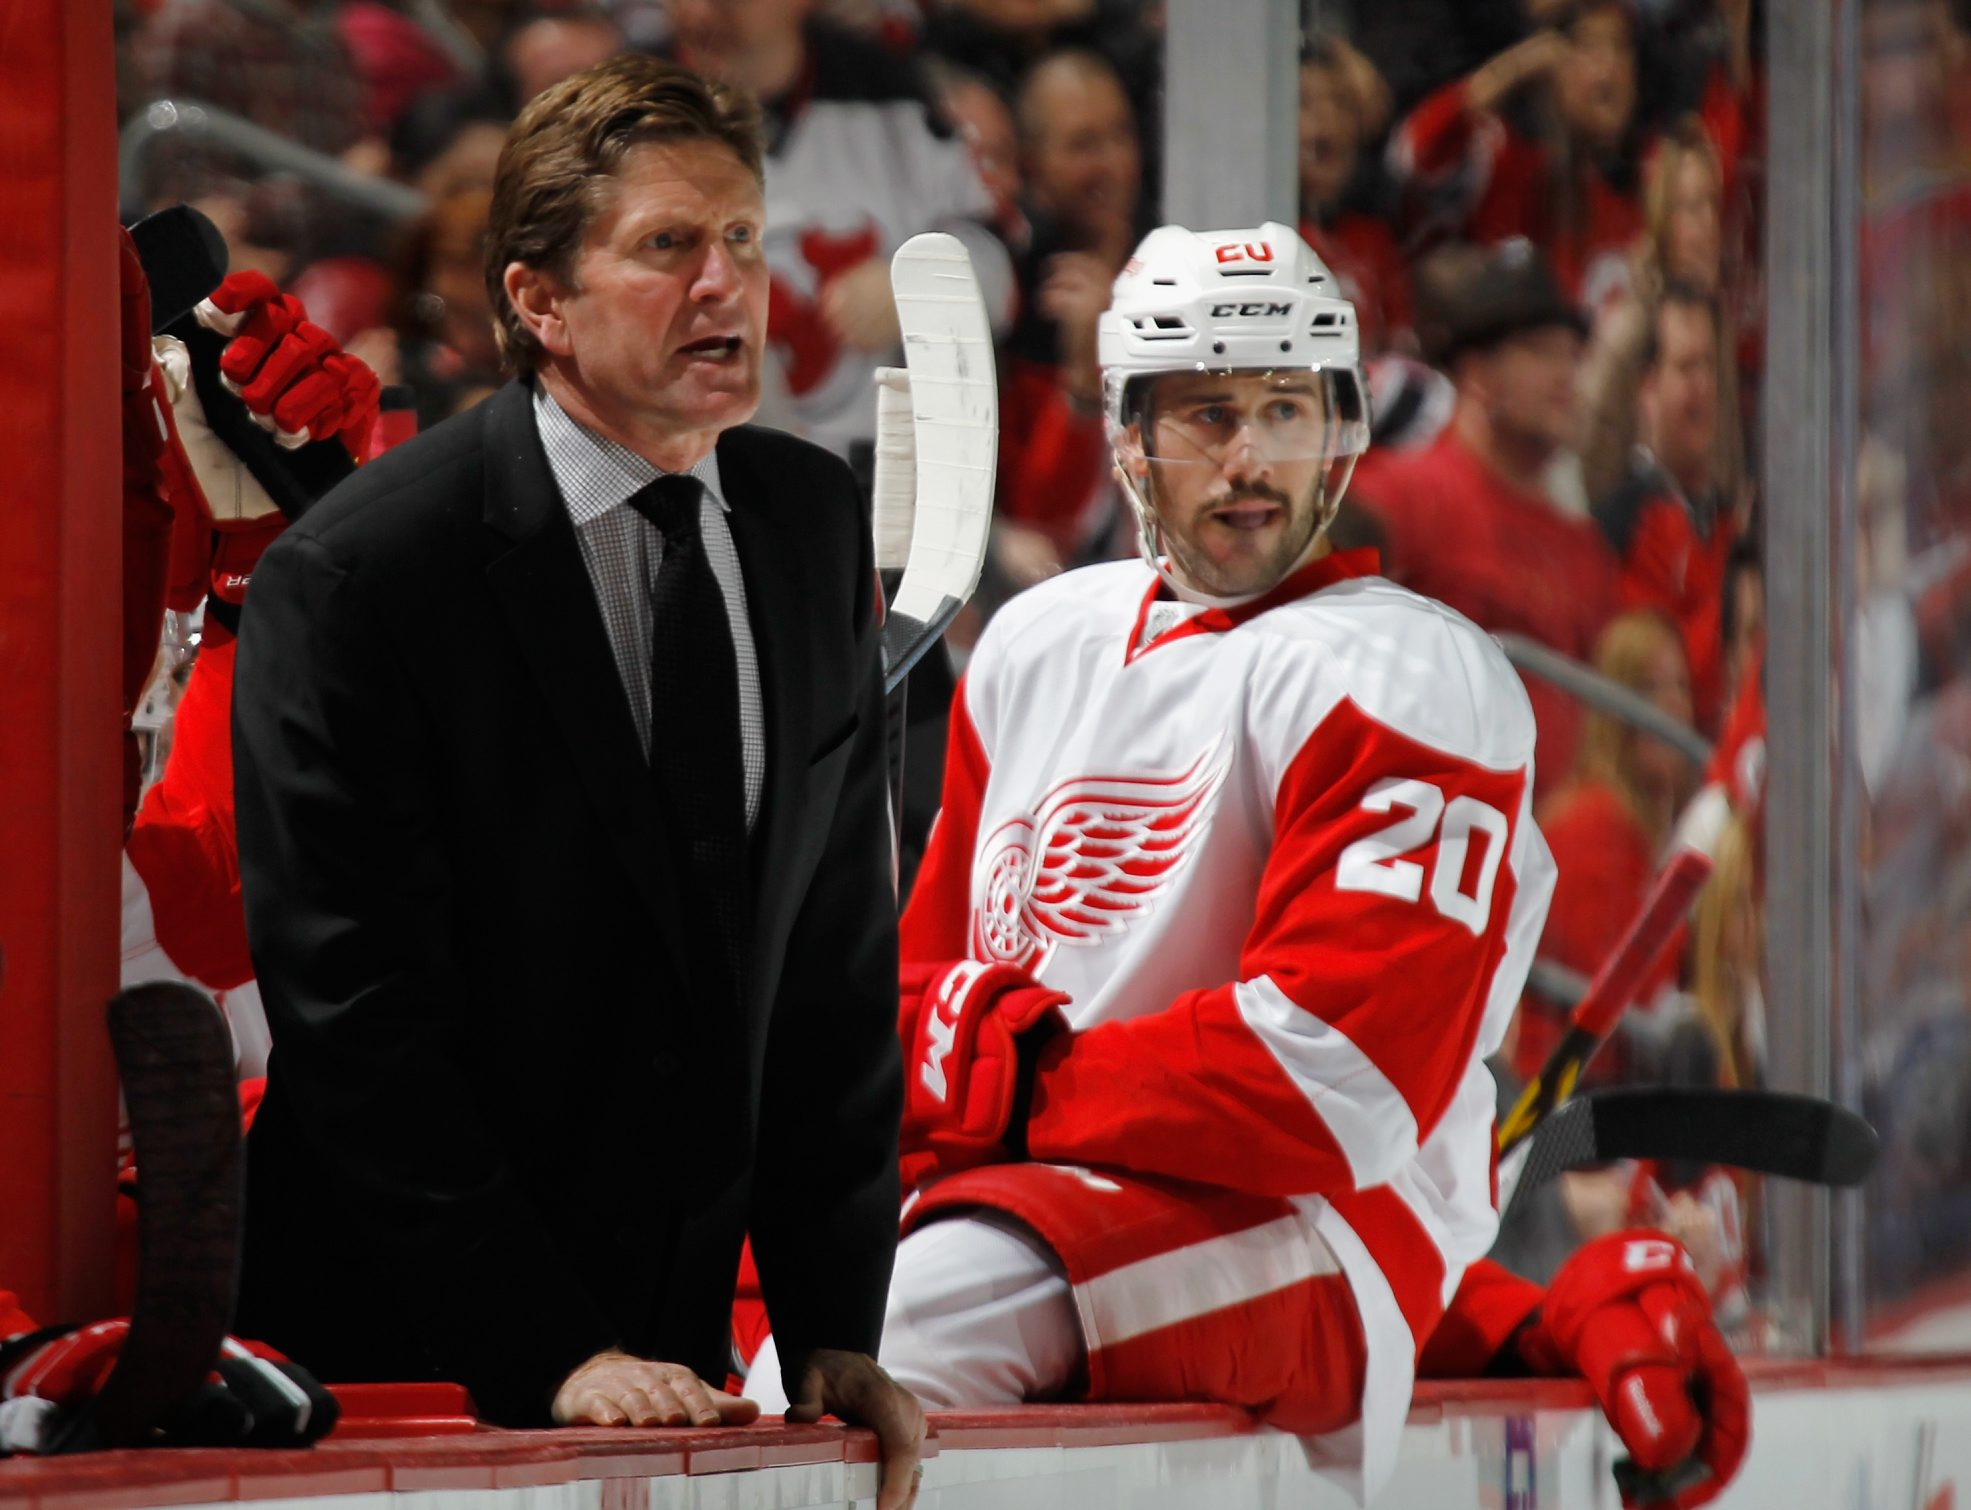 Red Wings coach Mike Babcock will be behind the bench in Toronto instead of Buffalo when the 2015-16 NHL season opens.